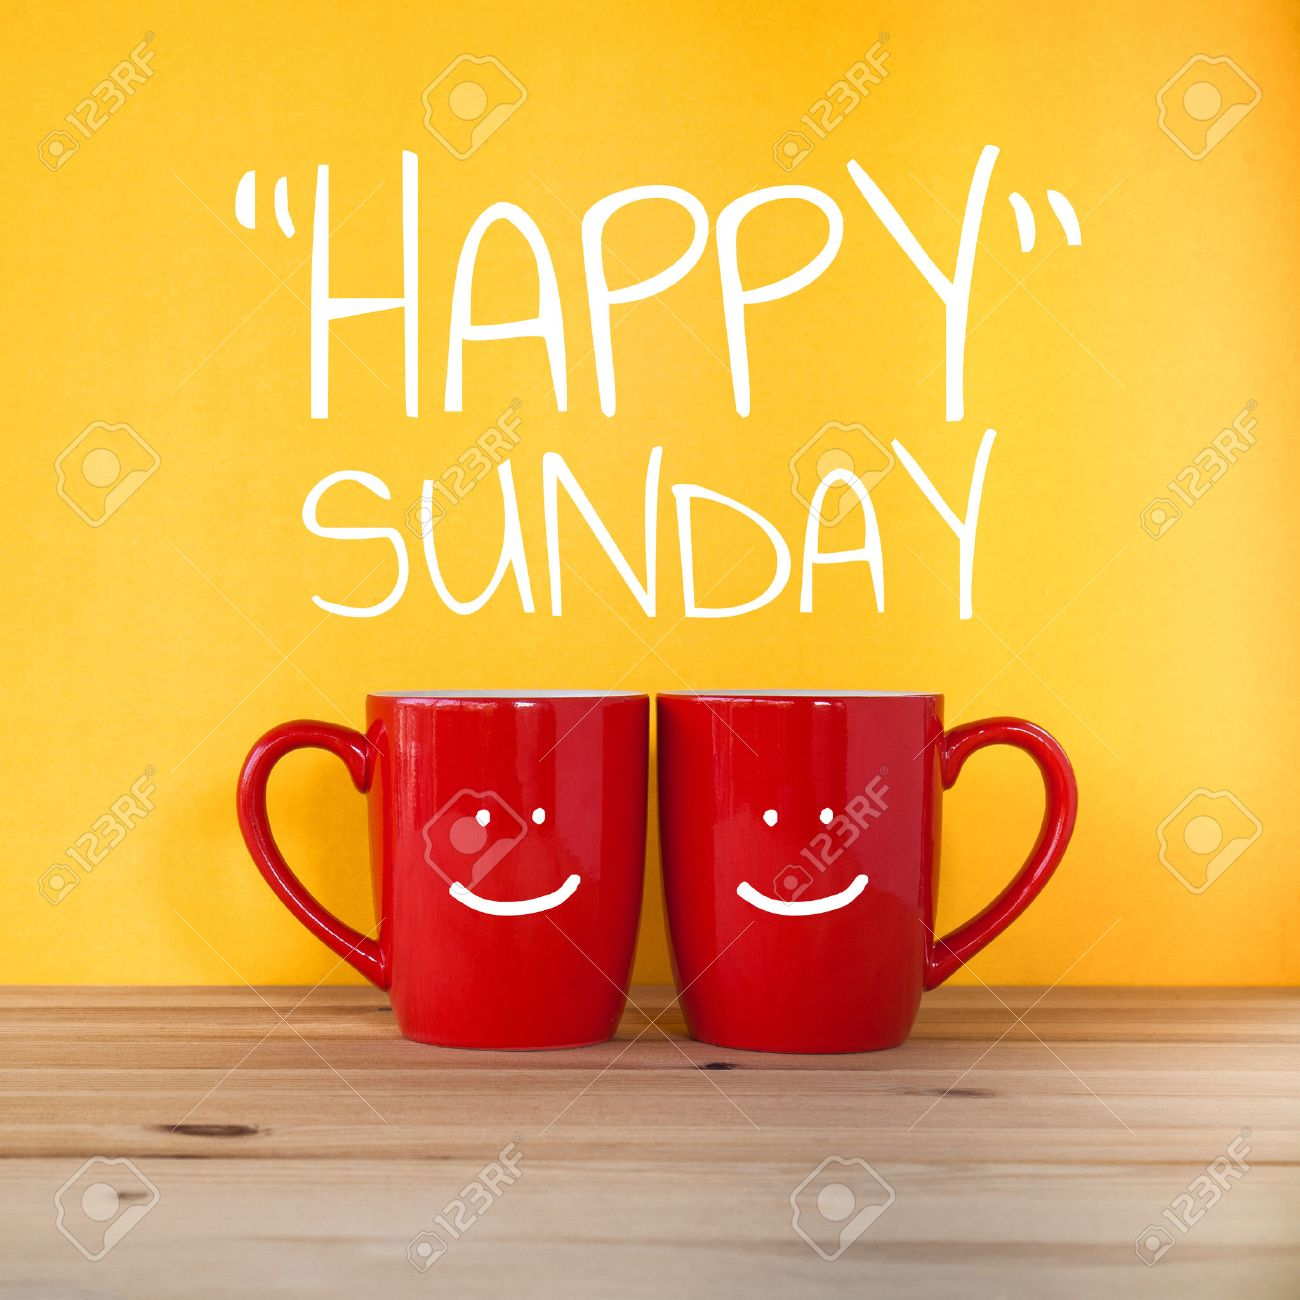 Happy Sunday Wordtwo Cups Of Coffee And Stand Together To Be